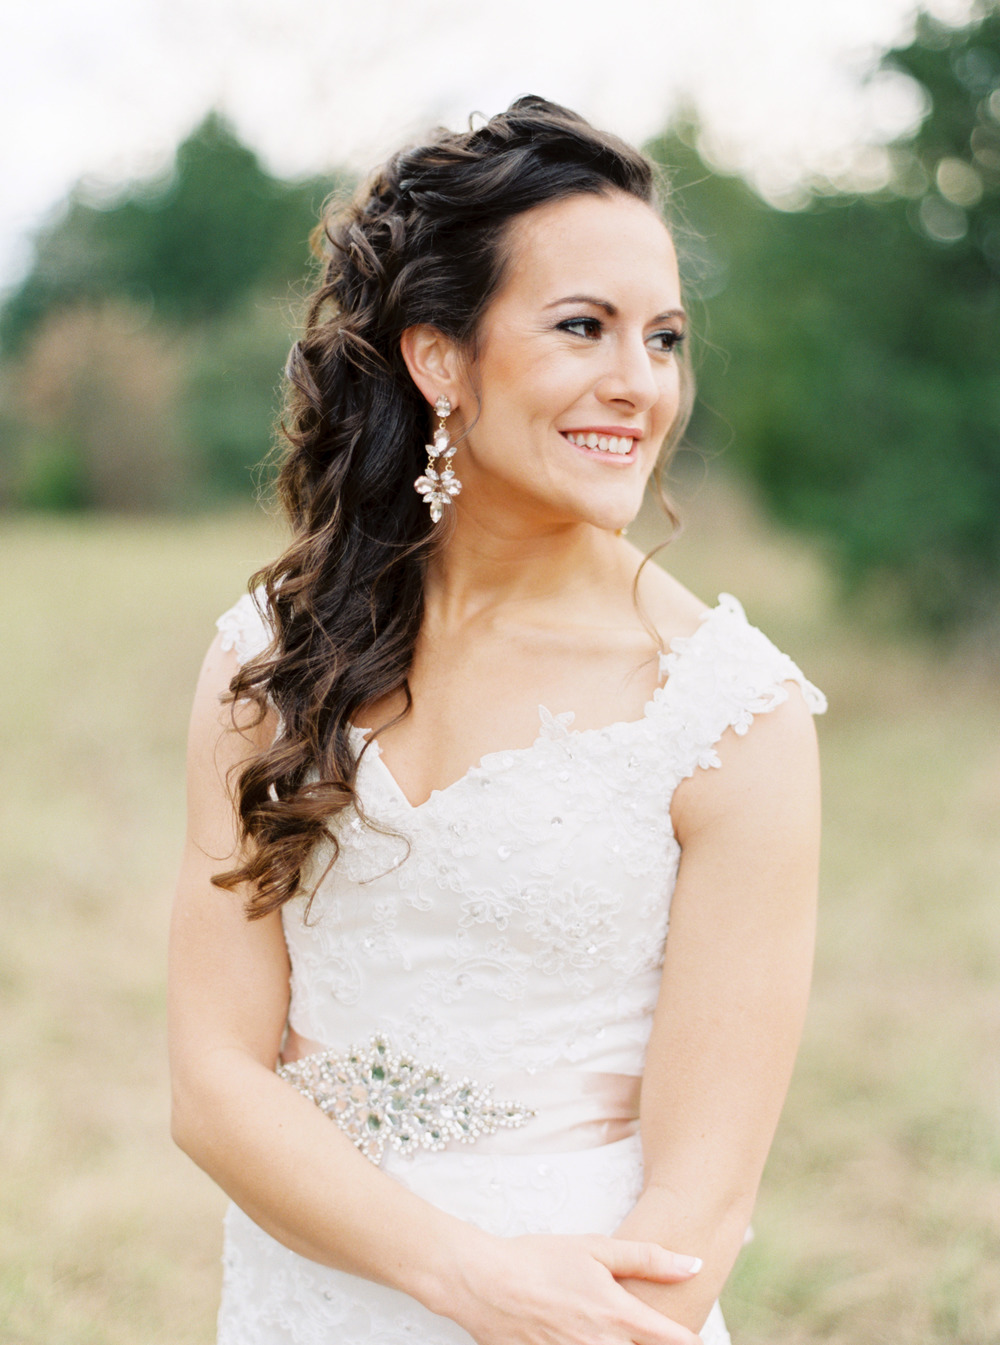 Sarah Best Photography - Emily's Bridals-105.jpg